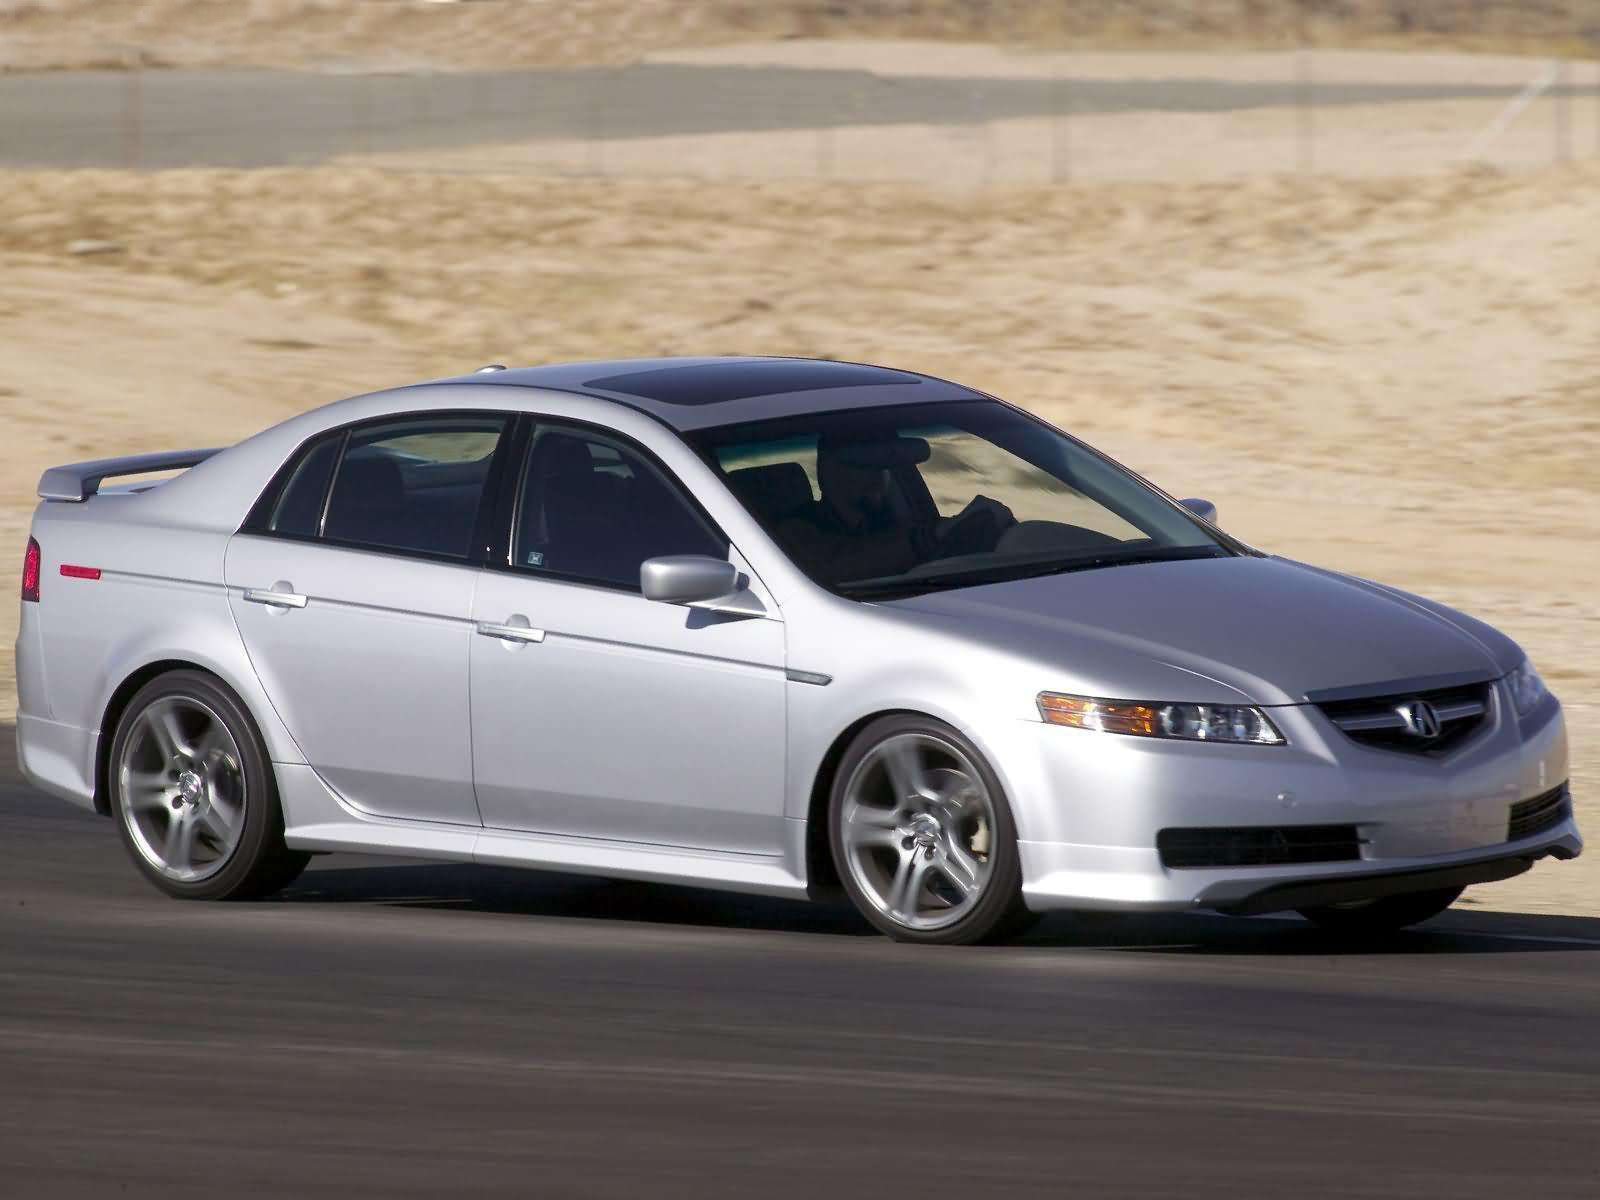 2018 Acura TL with ASPEC Performance Package photo - 2